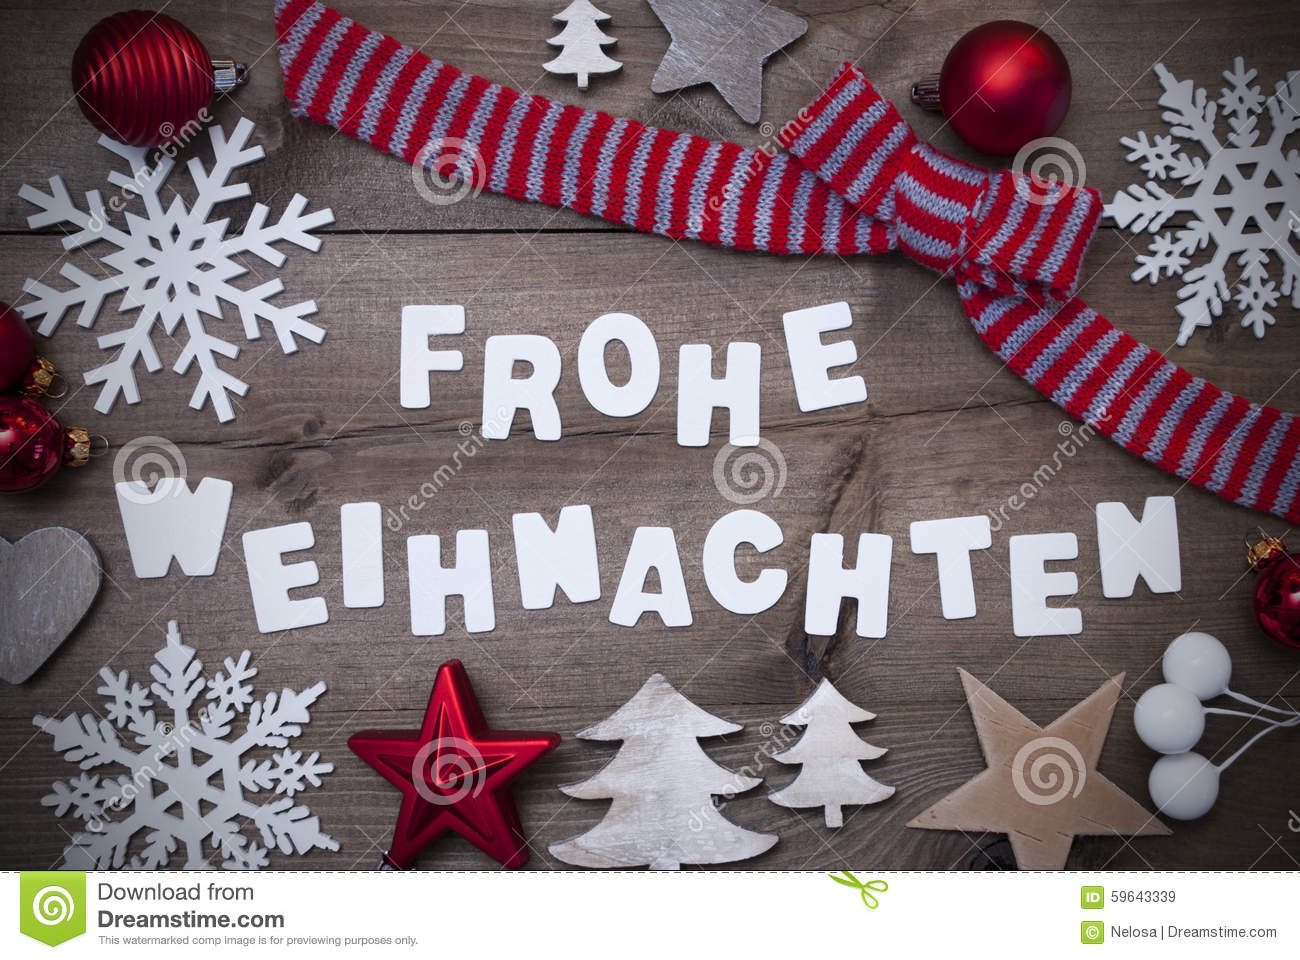 Frohe Weihnachten Frohe Weihnachten Mean Merry Christmas Red Loop Decoration Stock